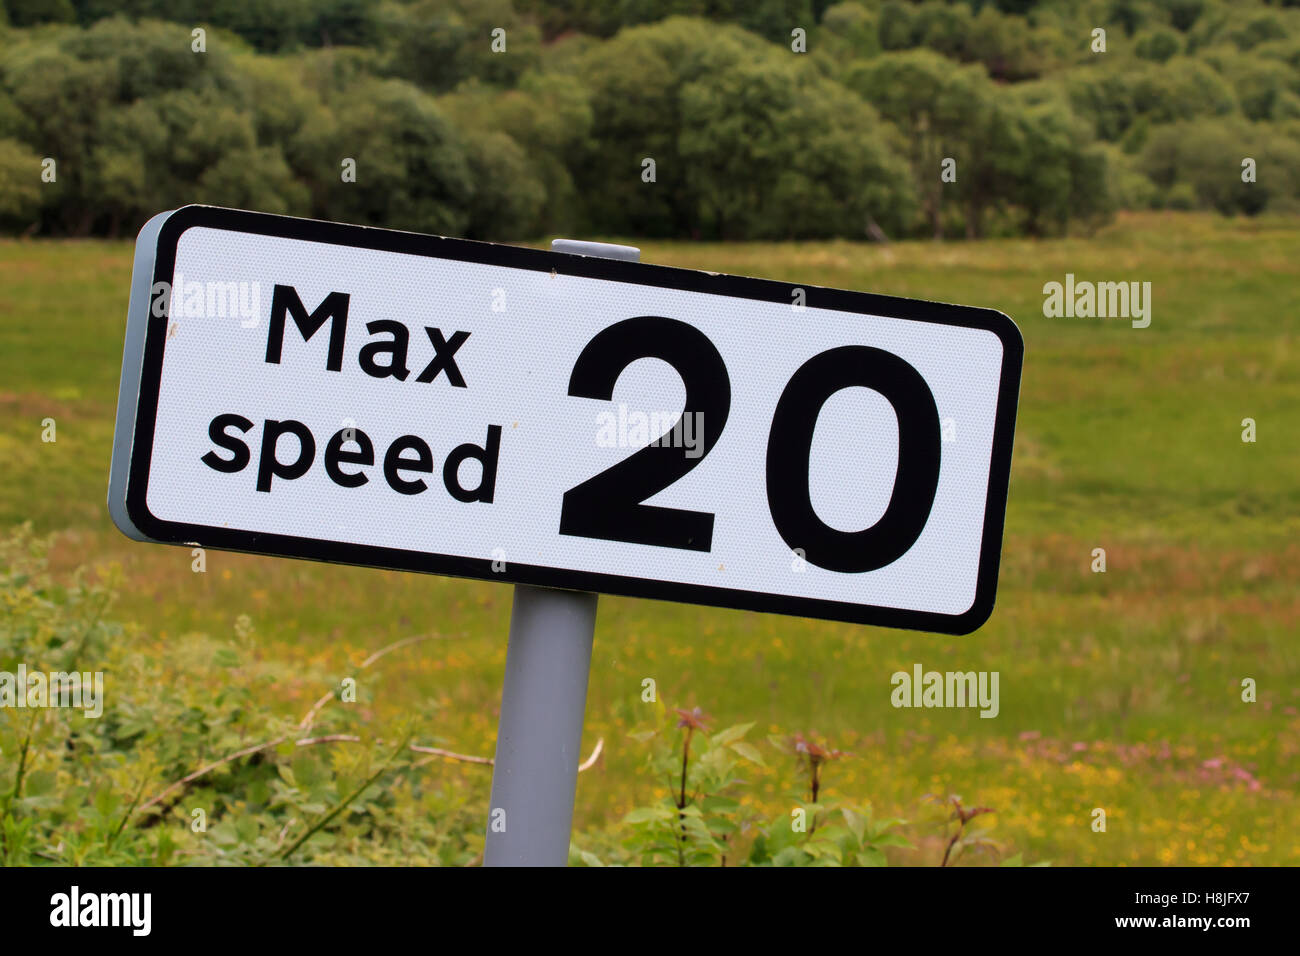 Road sign advising Max speed 20 MPH - Stock Image